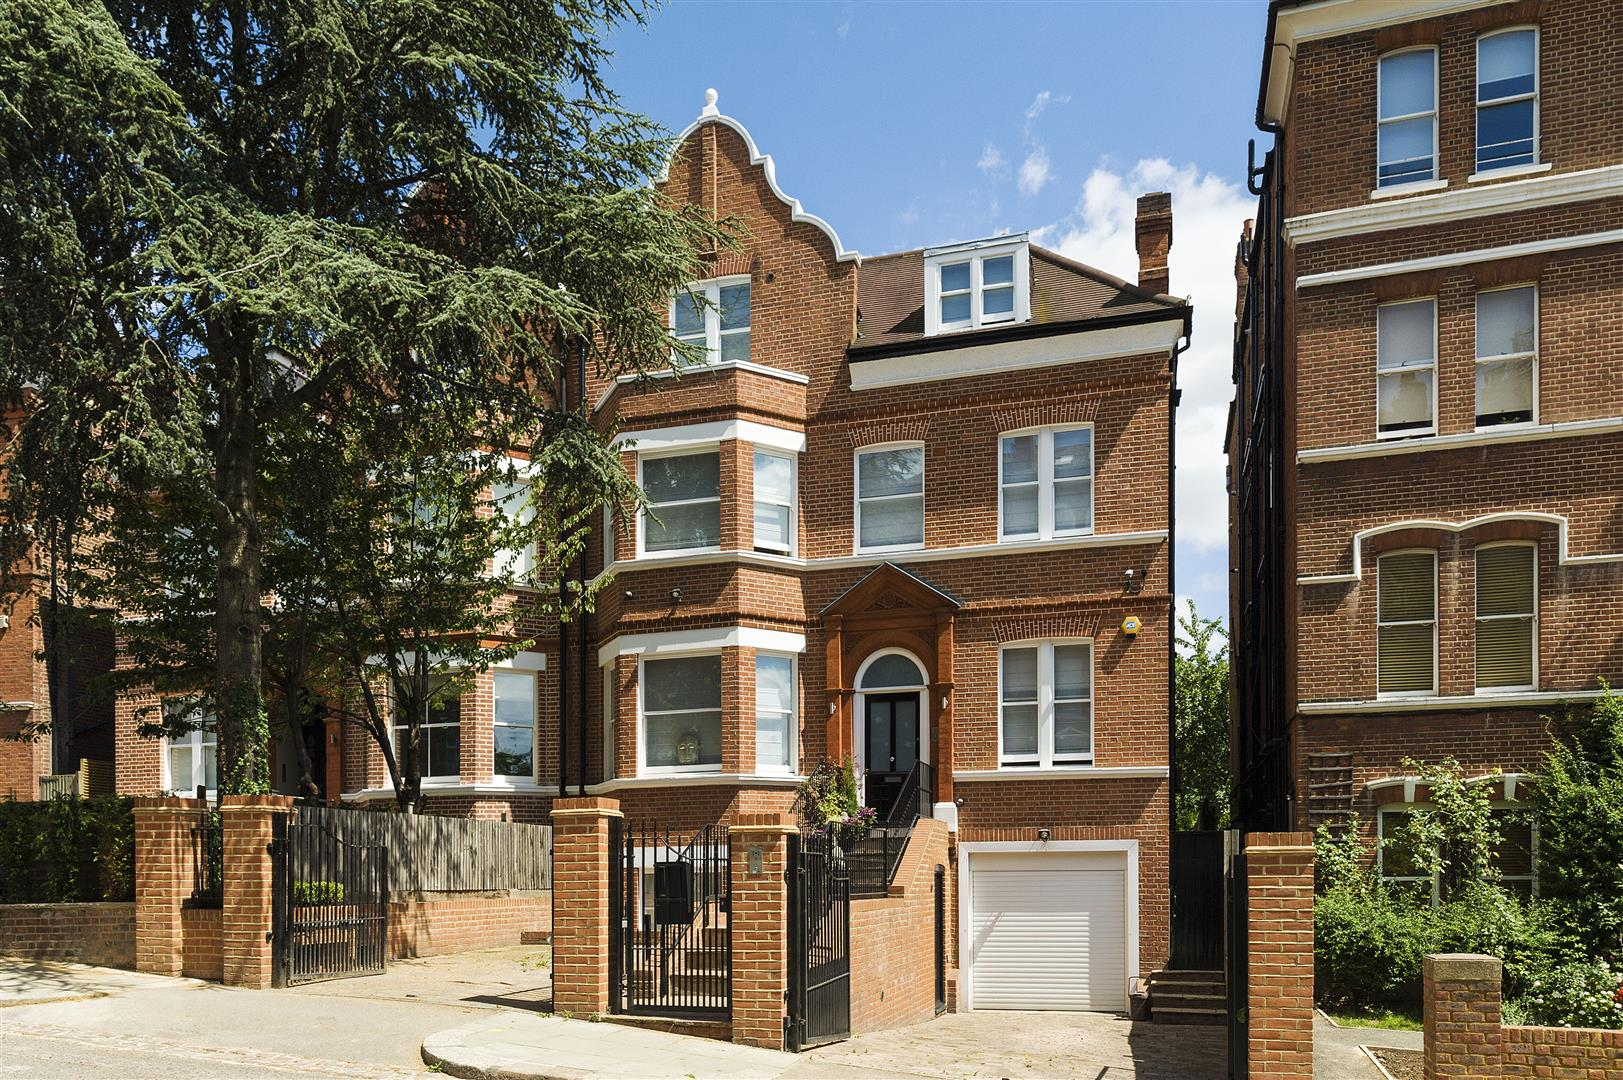 6 Bedrooms House for sale in Langland Gardens, Hampstead NW3